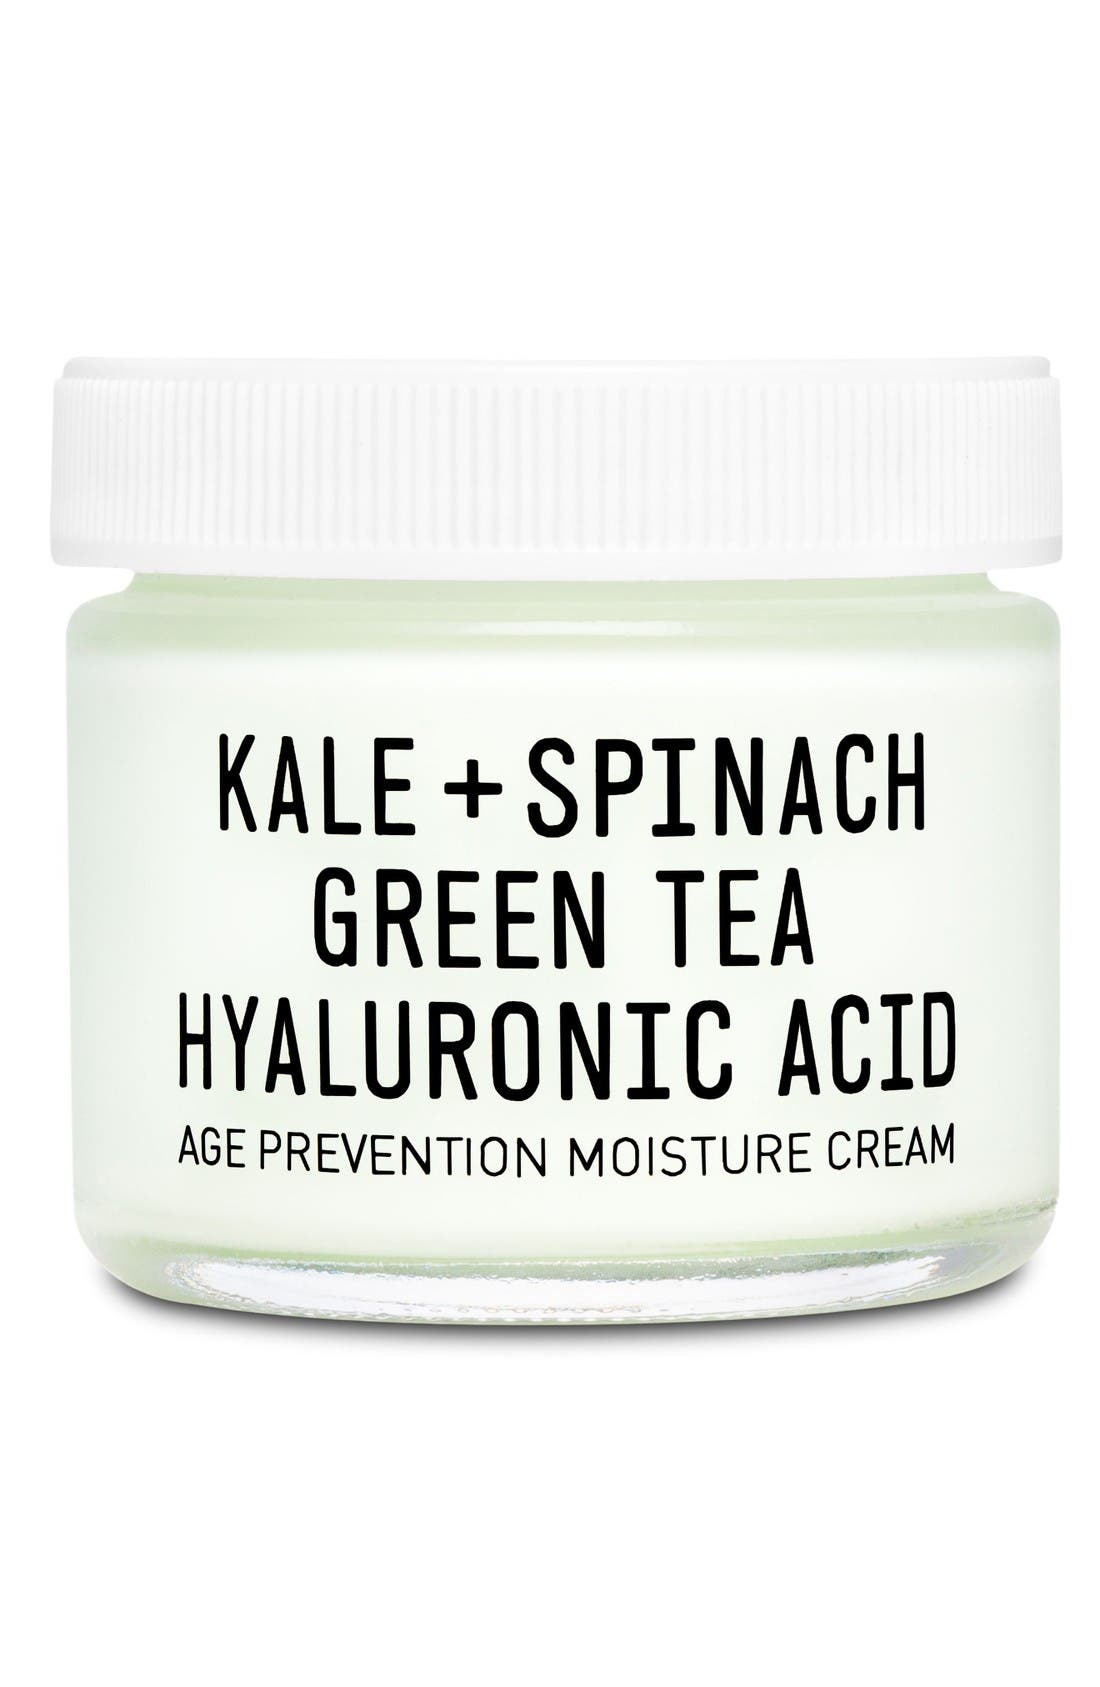 Alternate Image 1 Selected - Youth to the People Kale + Spinach Green Tea Hyaluronic Acid Age Prevention Cream